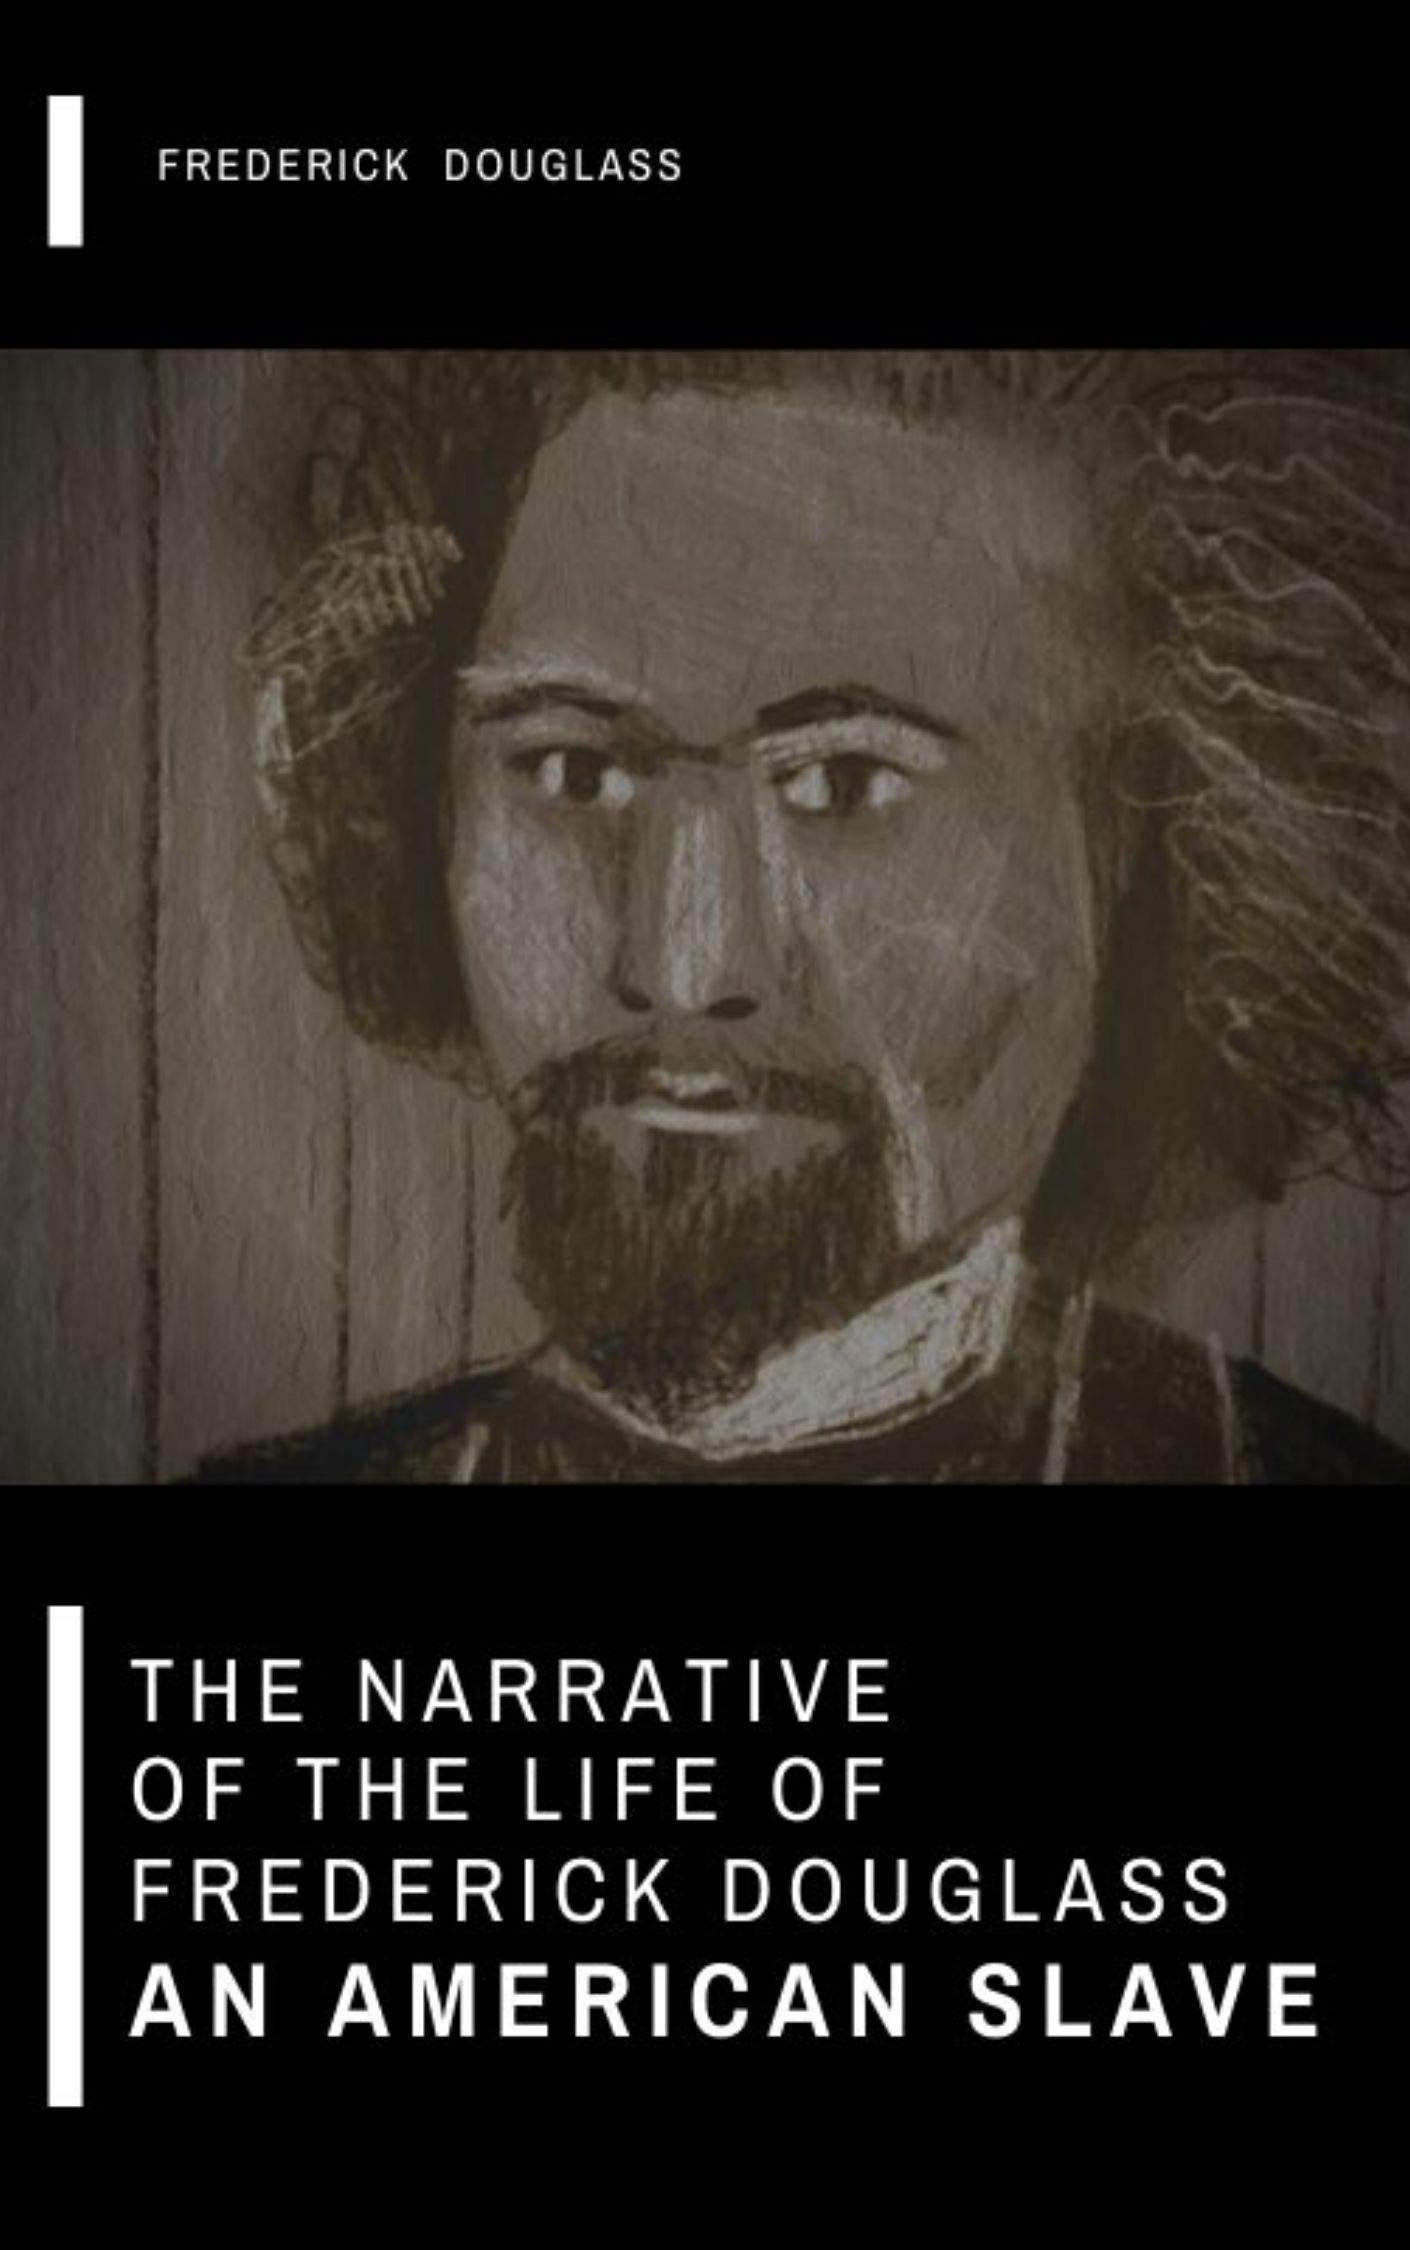 The Narrative of the Life of Frederick Douglass An American Slave